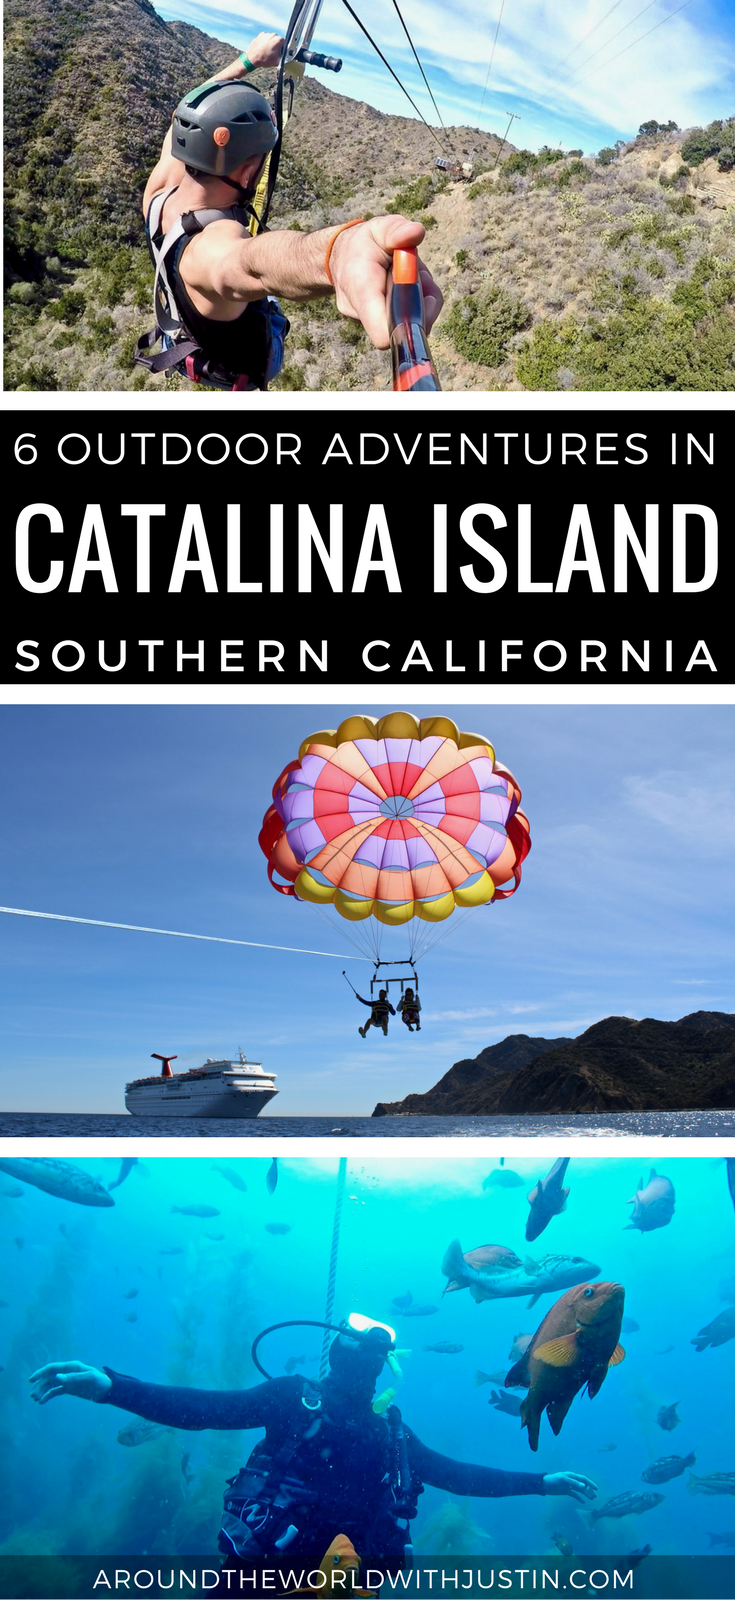 Things to do in Catalina Island parasailing zip lining scuba diving ropes course kayaking jeep tour